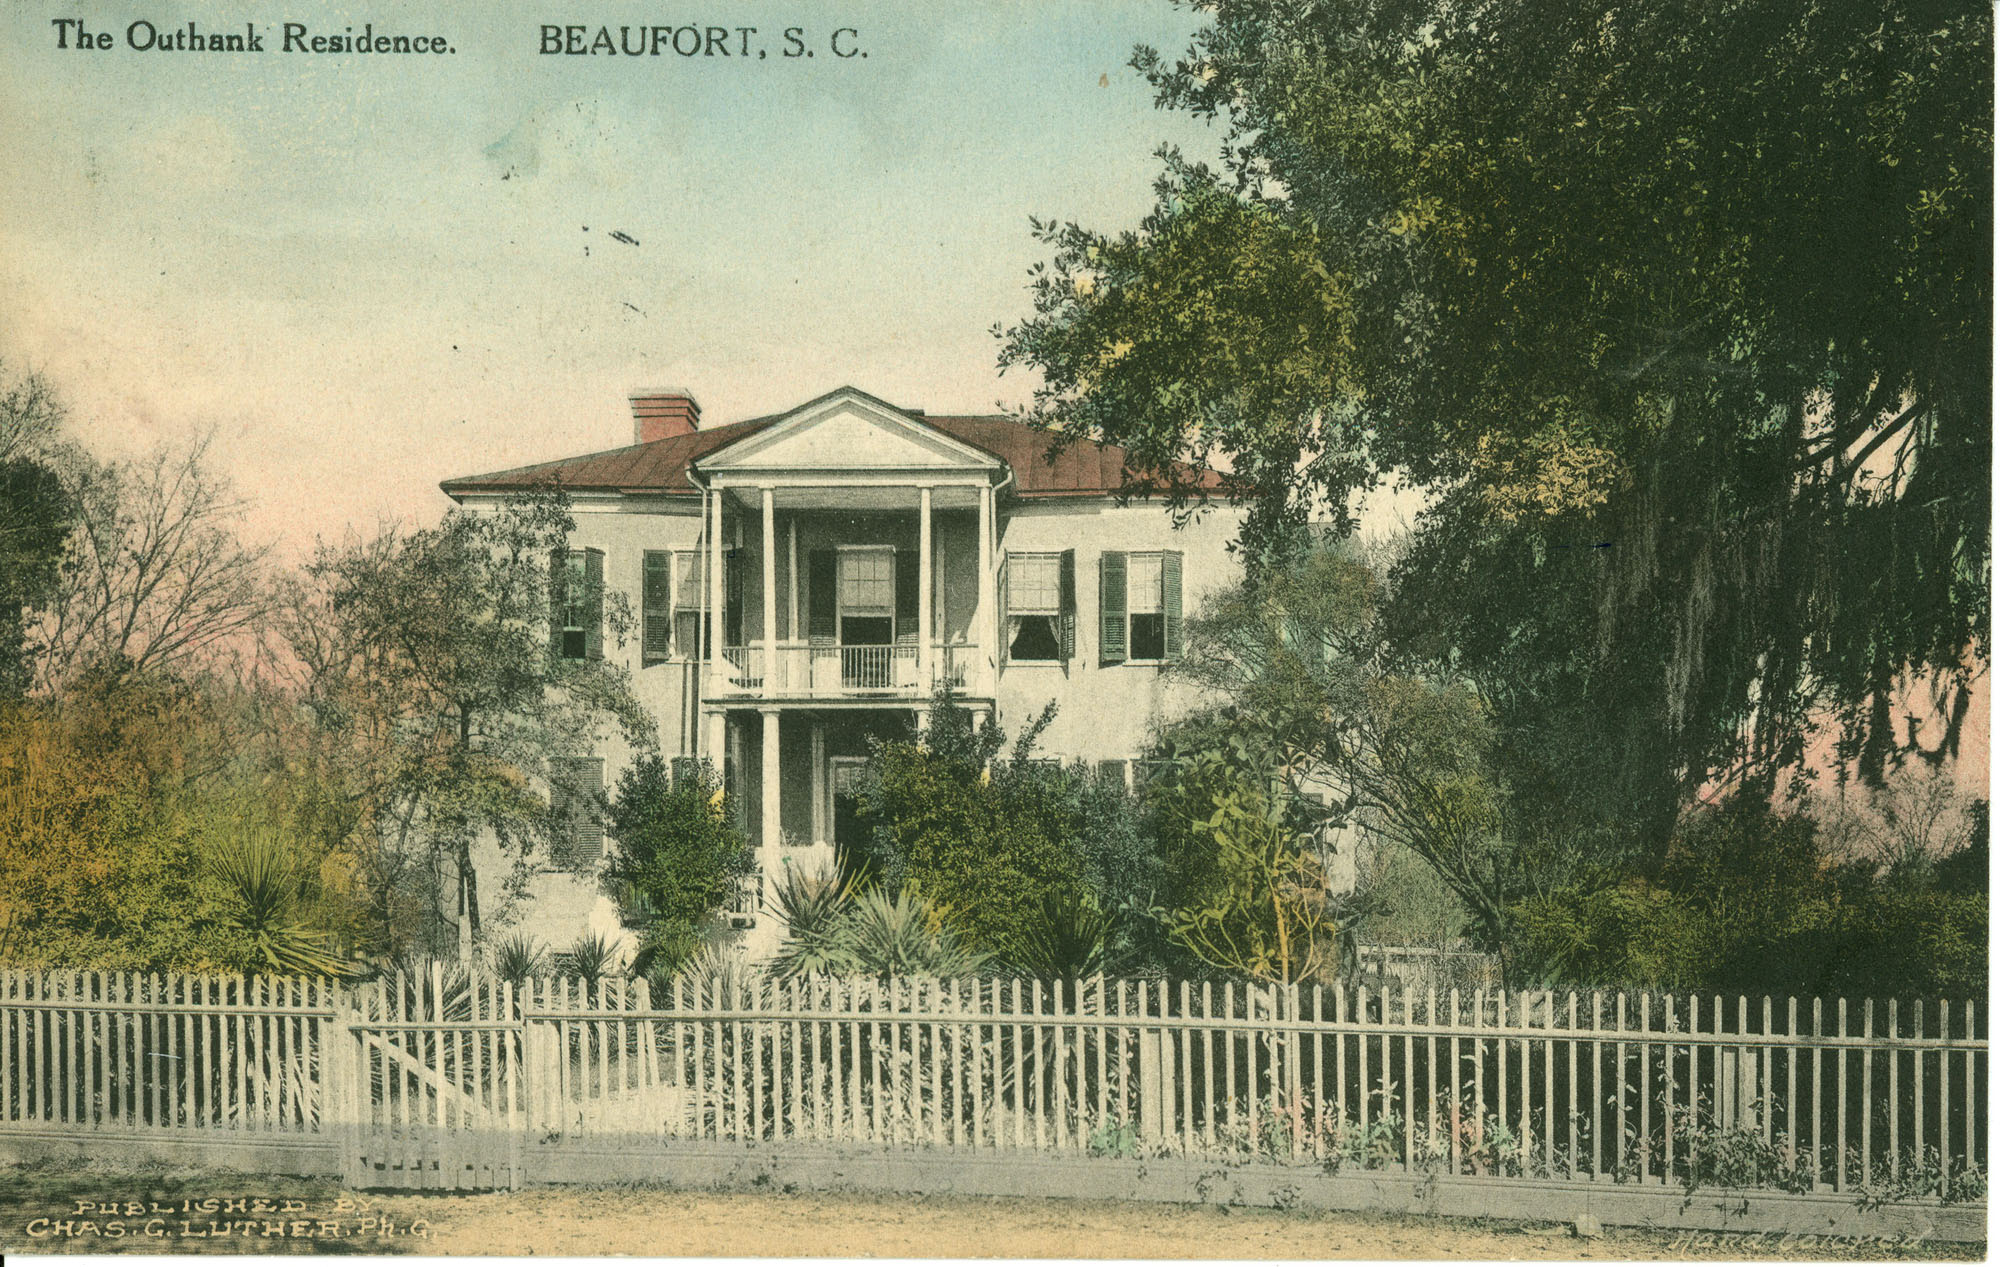 The Onthank Residence. Beaufort, S.C.